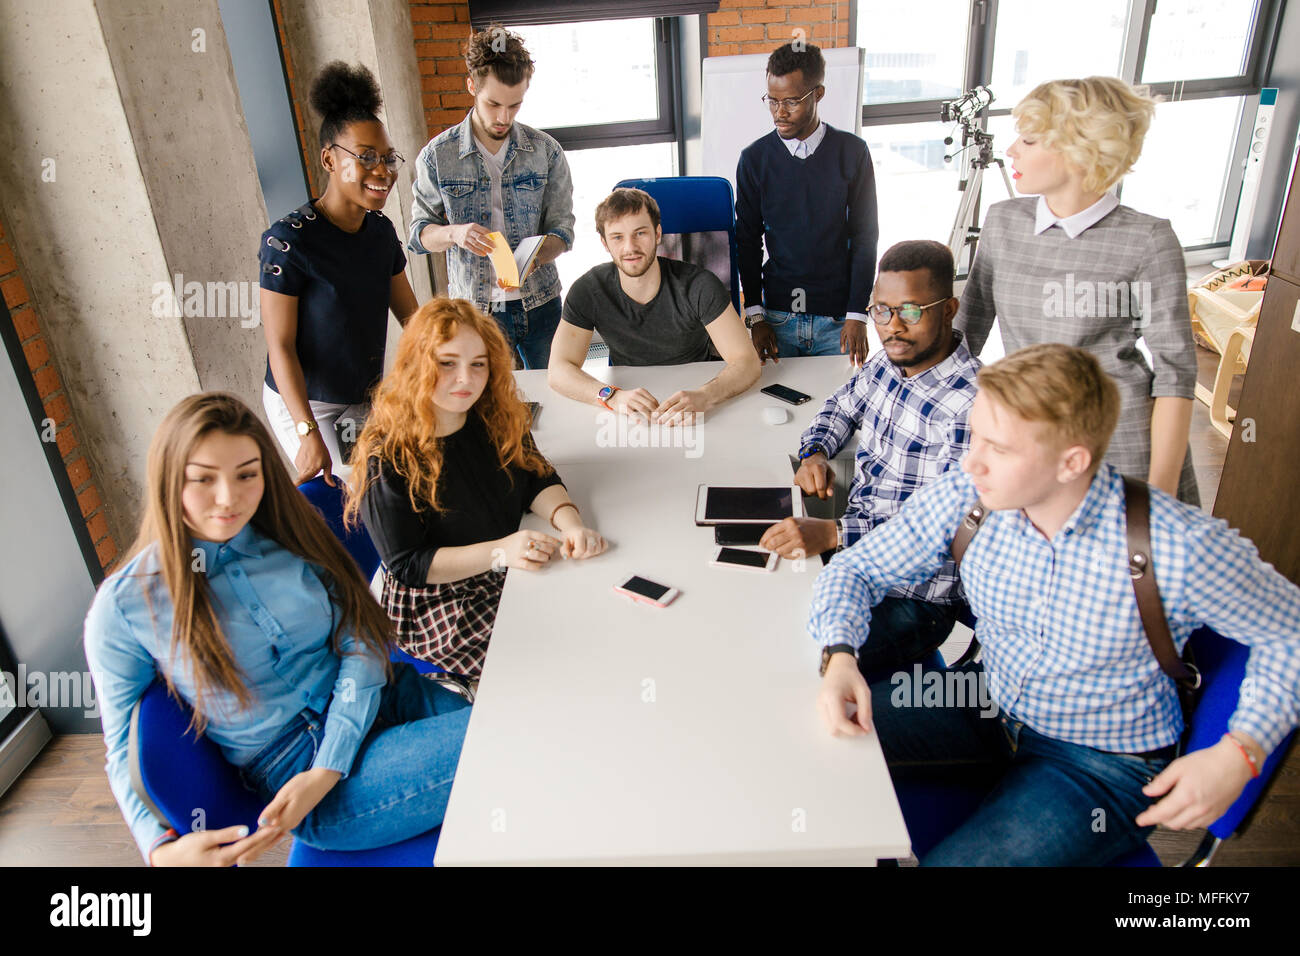 closeup shot of seminar for mixes race engineers in the loft office - Stock Image